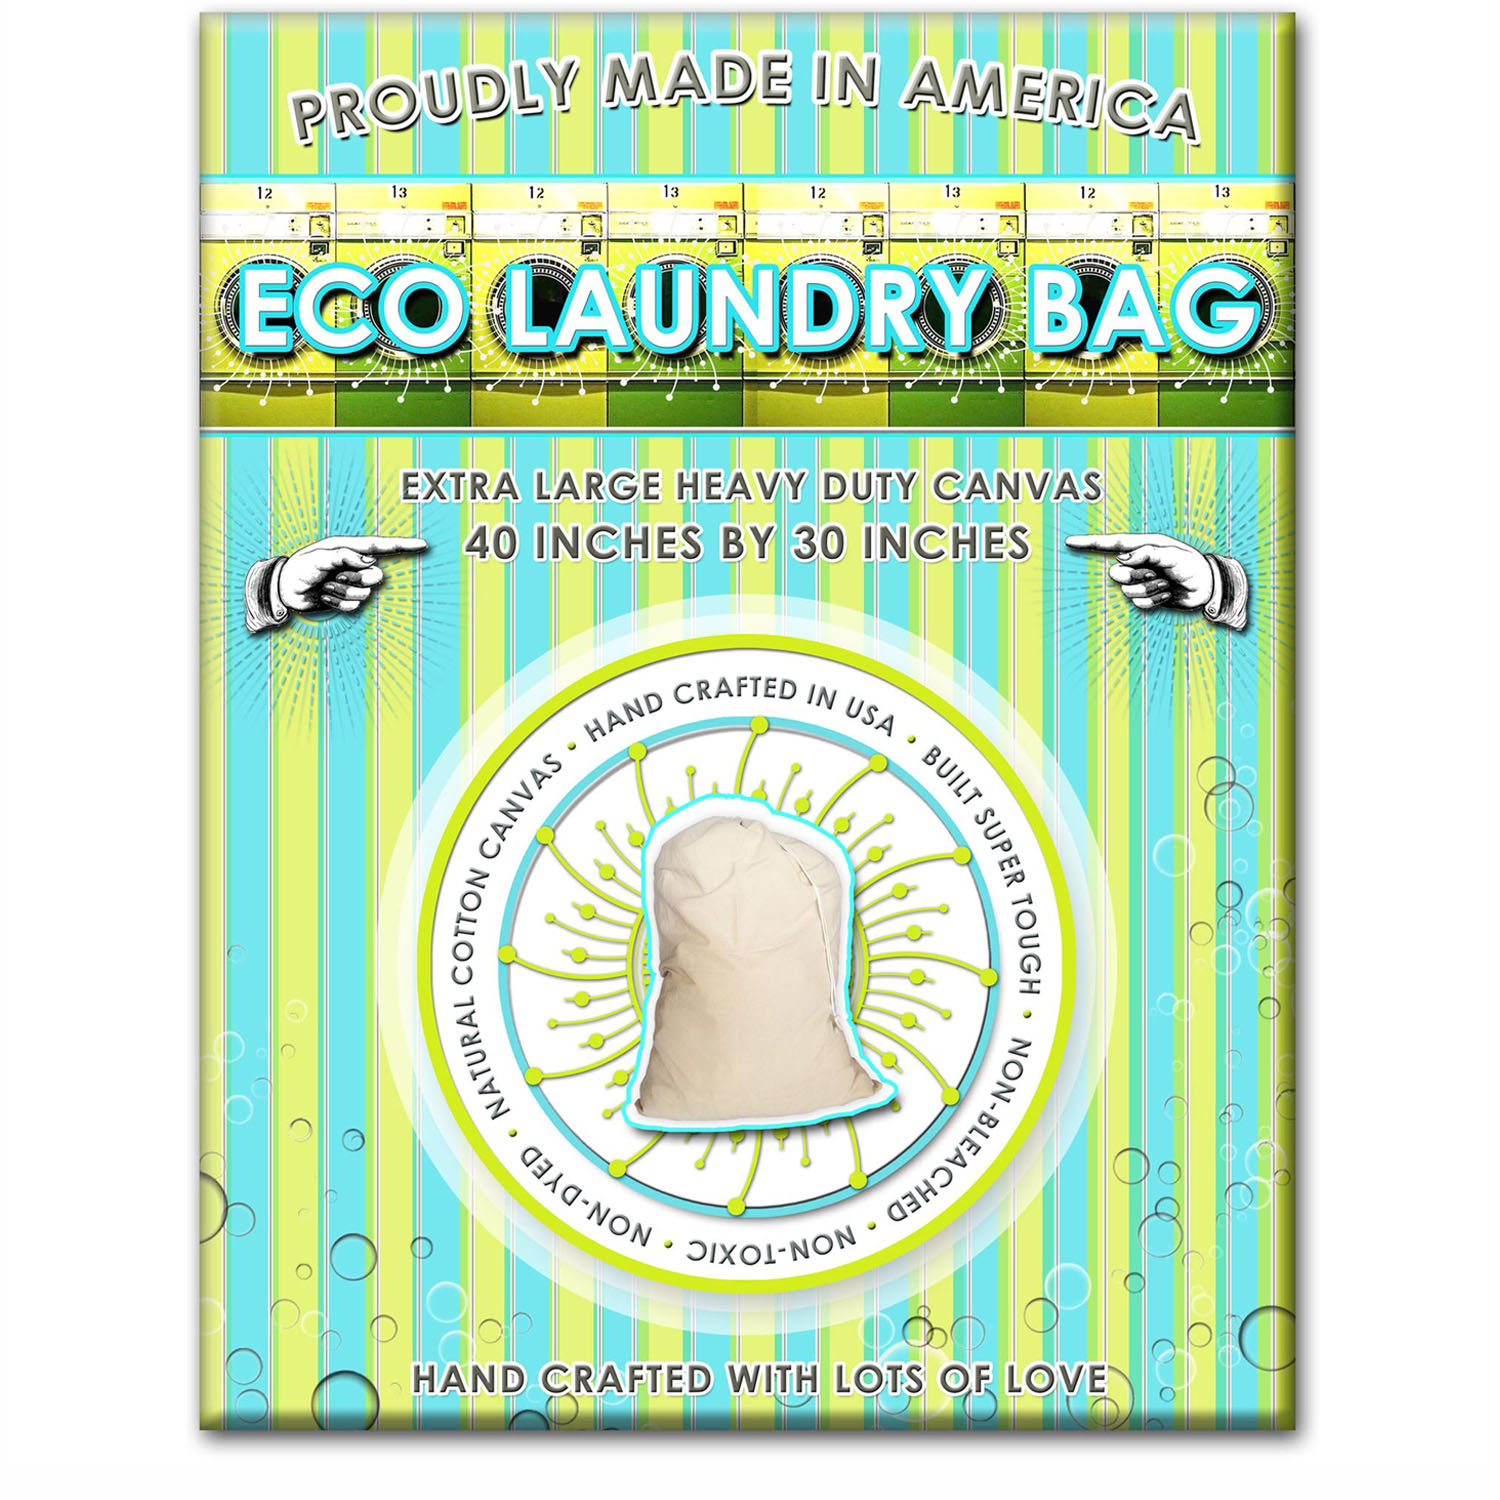 Laundry Bag- Front Page.jpg